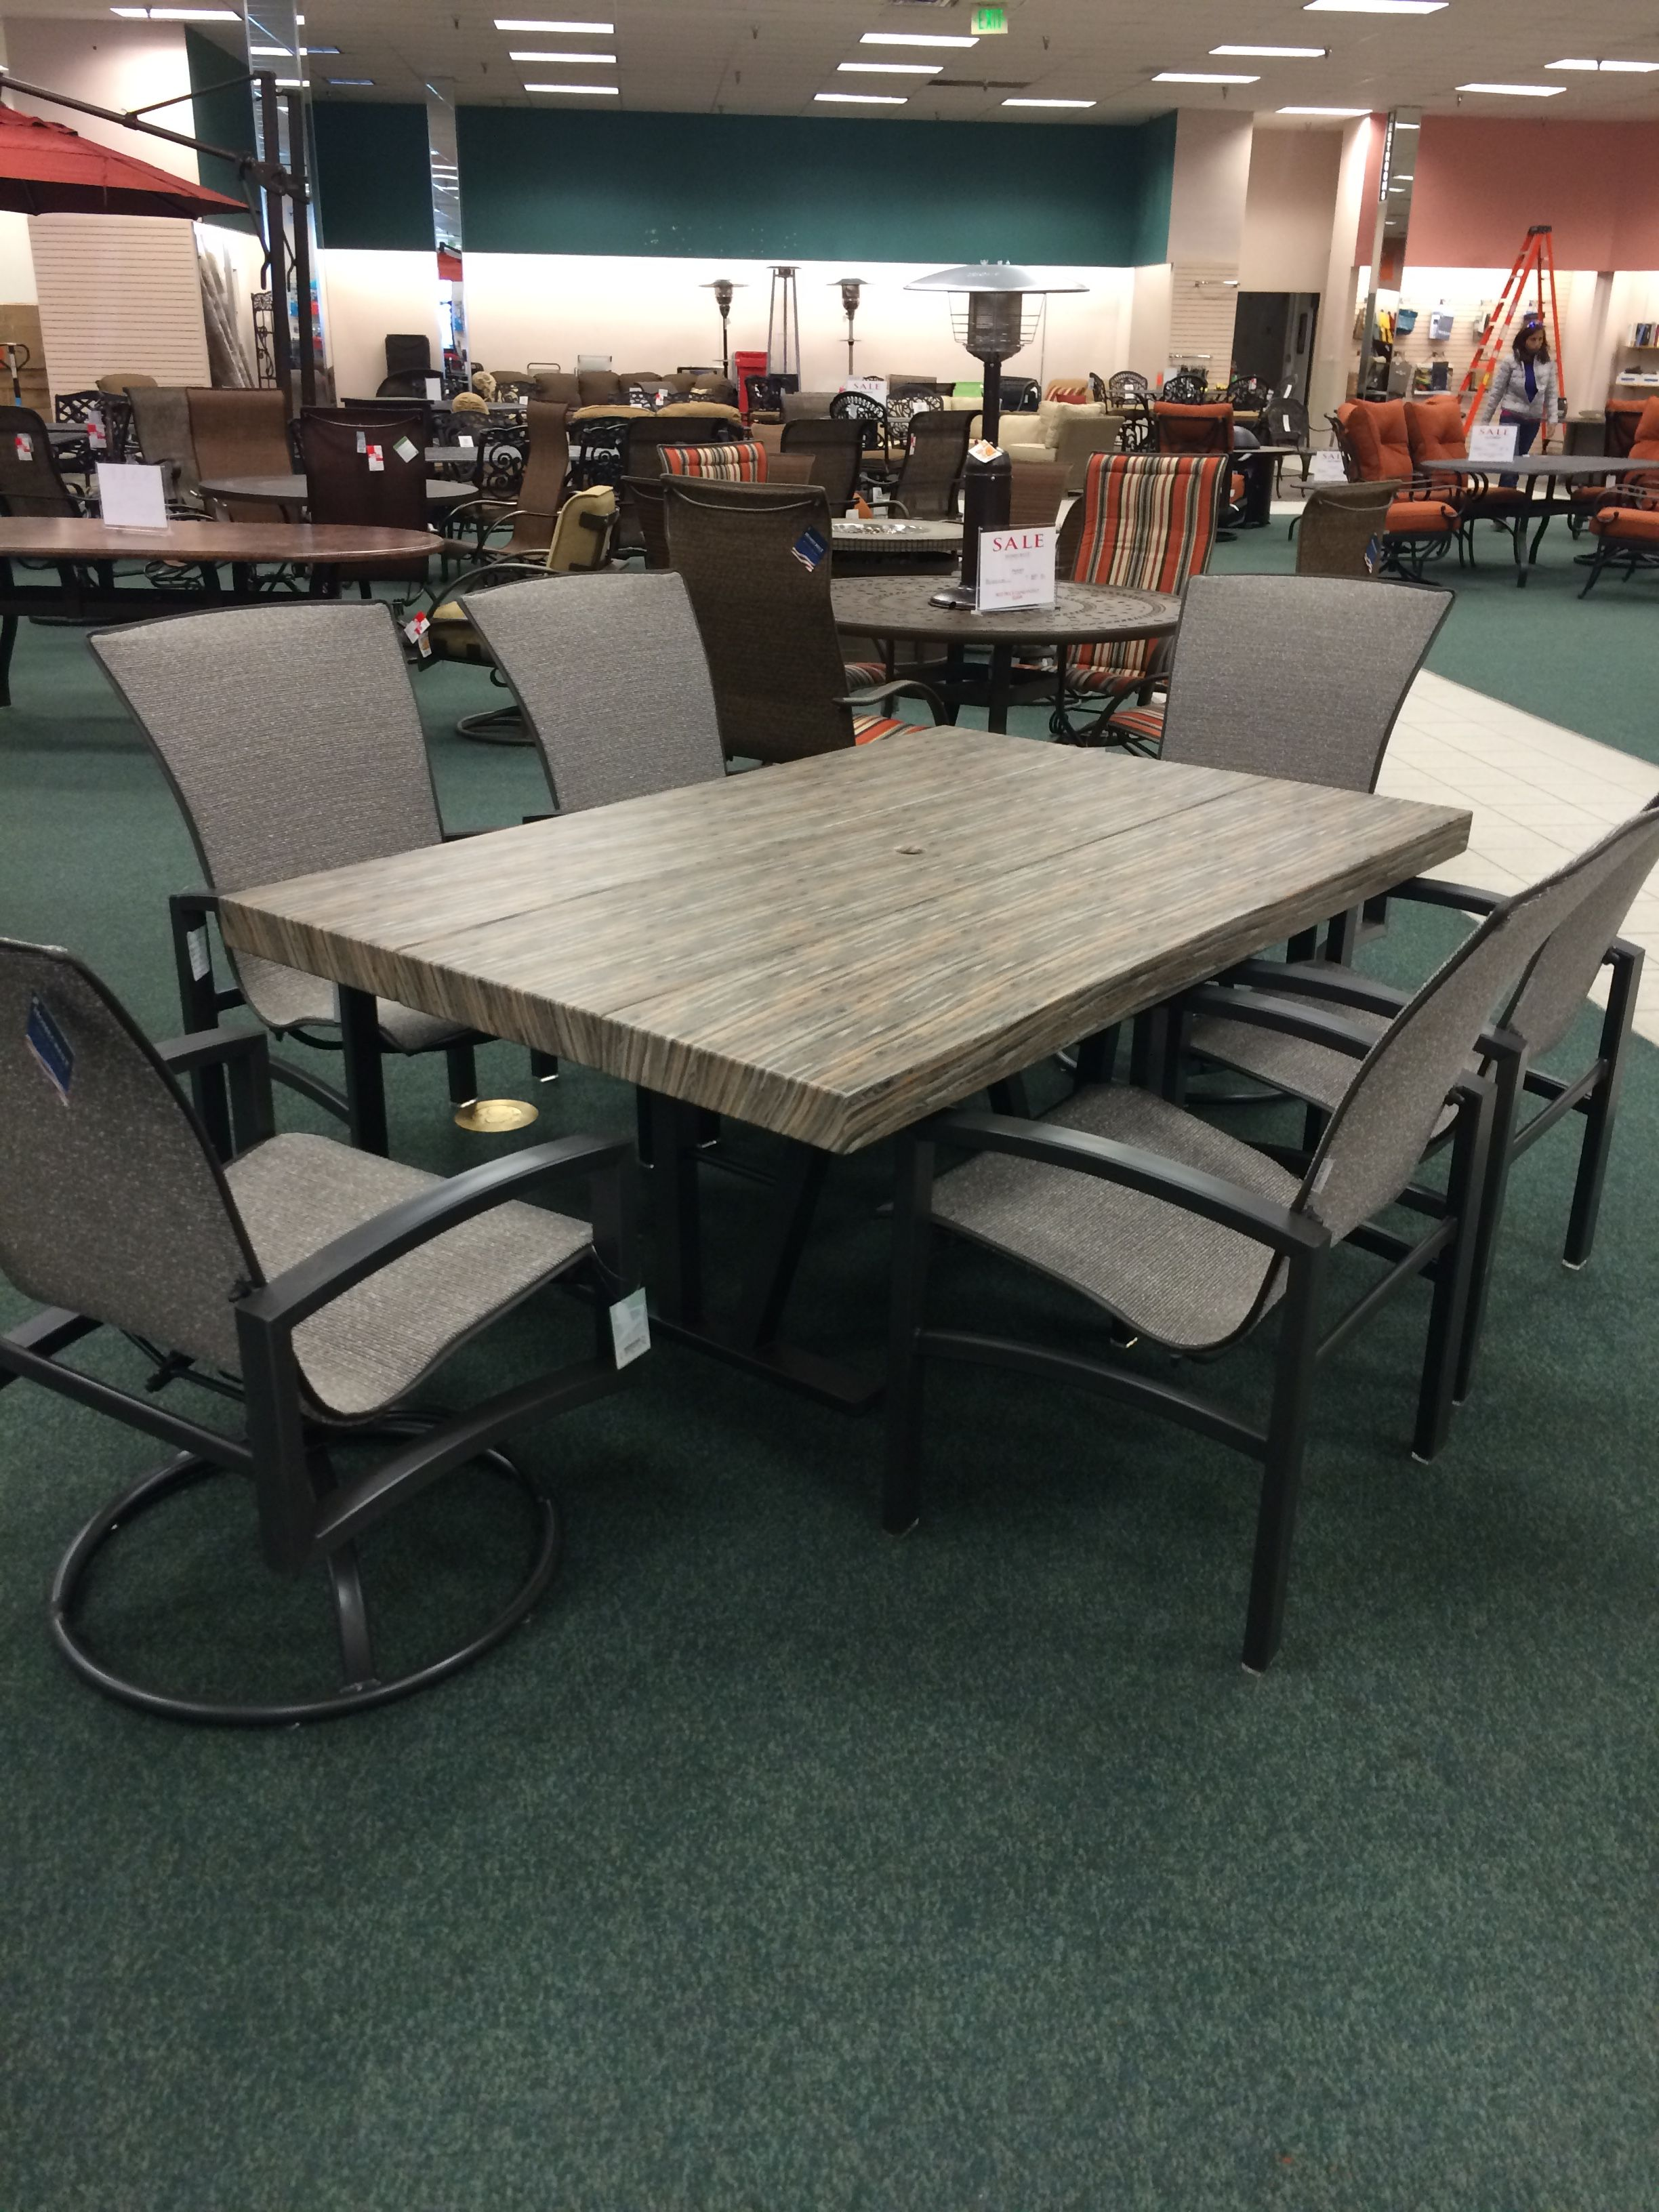 Christy Sports Patio Furniture in Littleton CO is displaying our